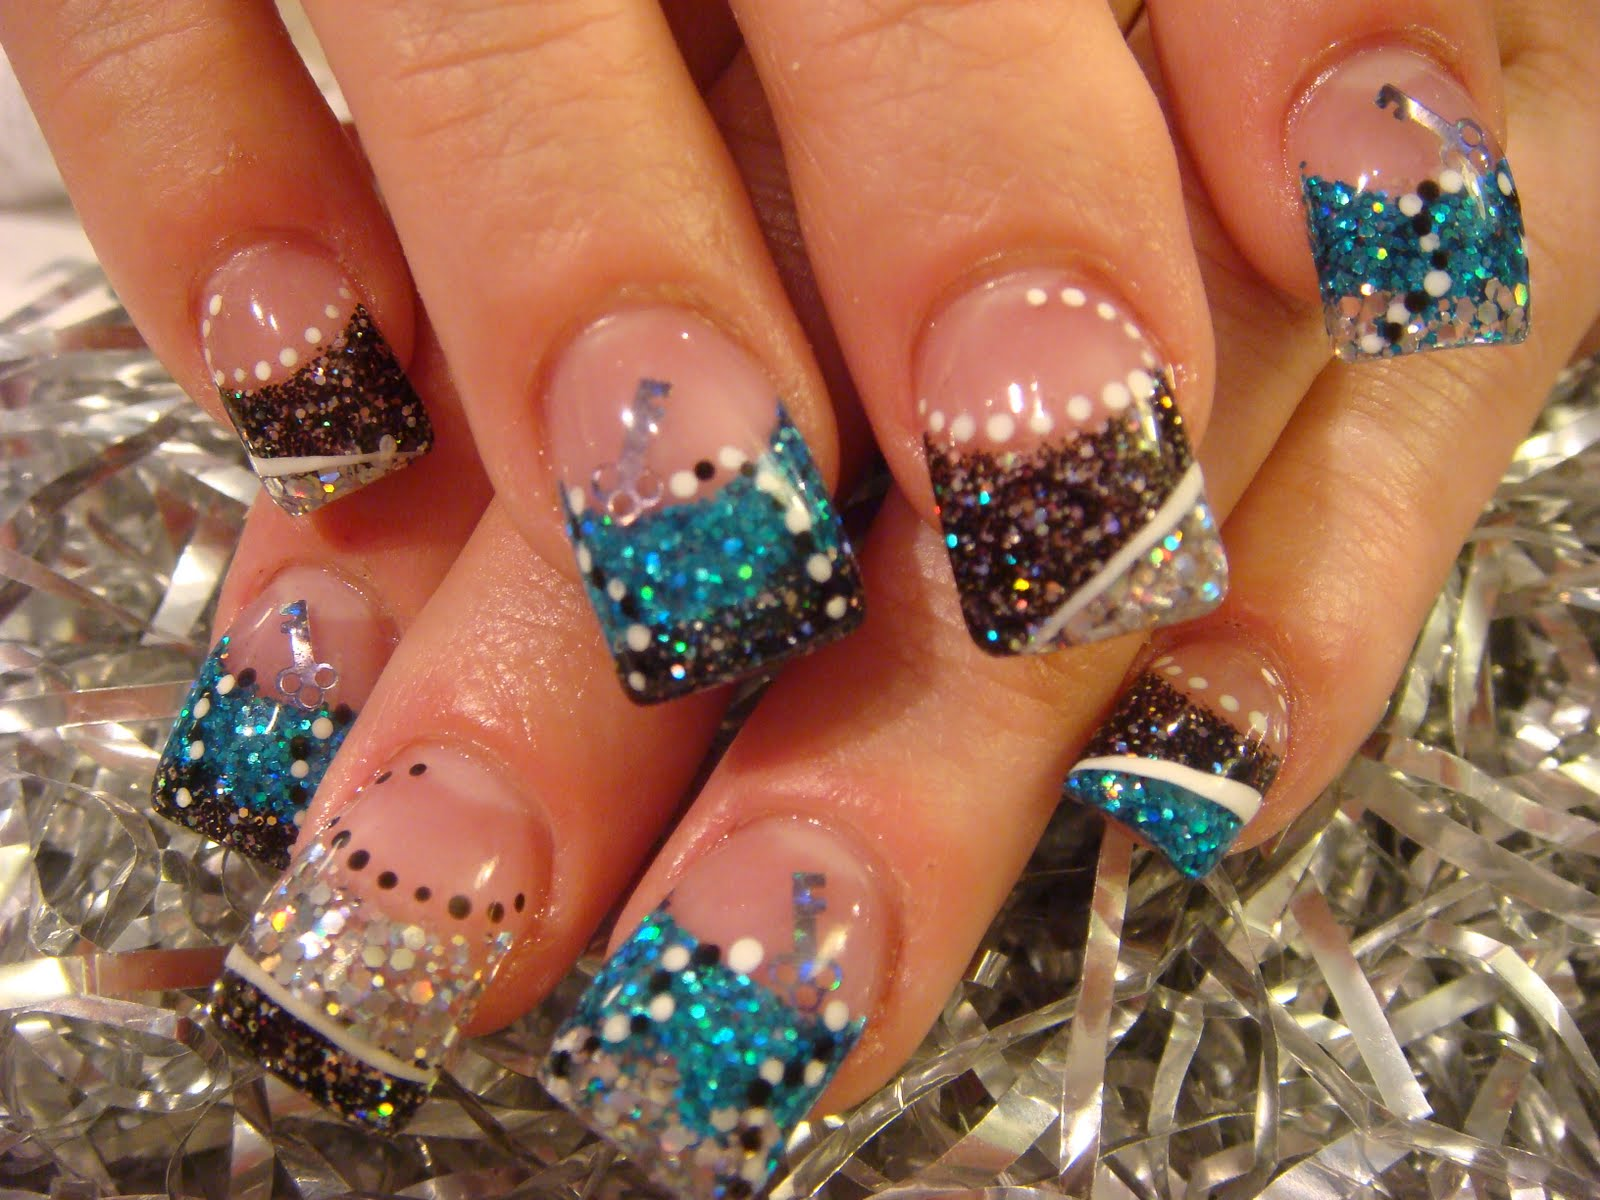 The Excellent Amazing fun nail designs 2015 Images